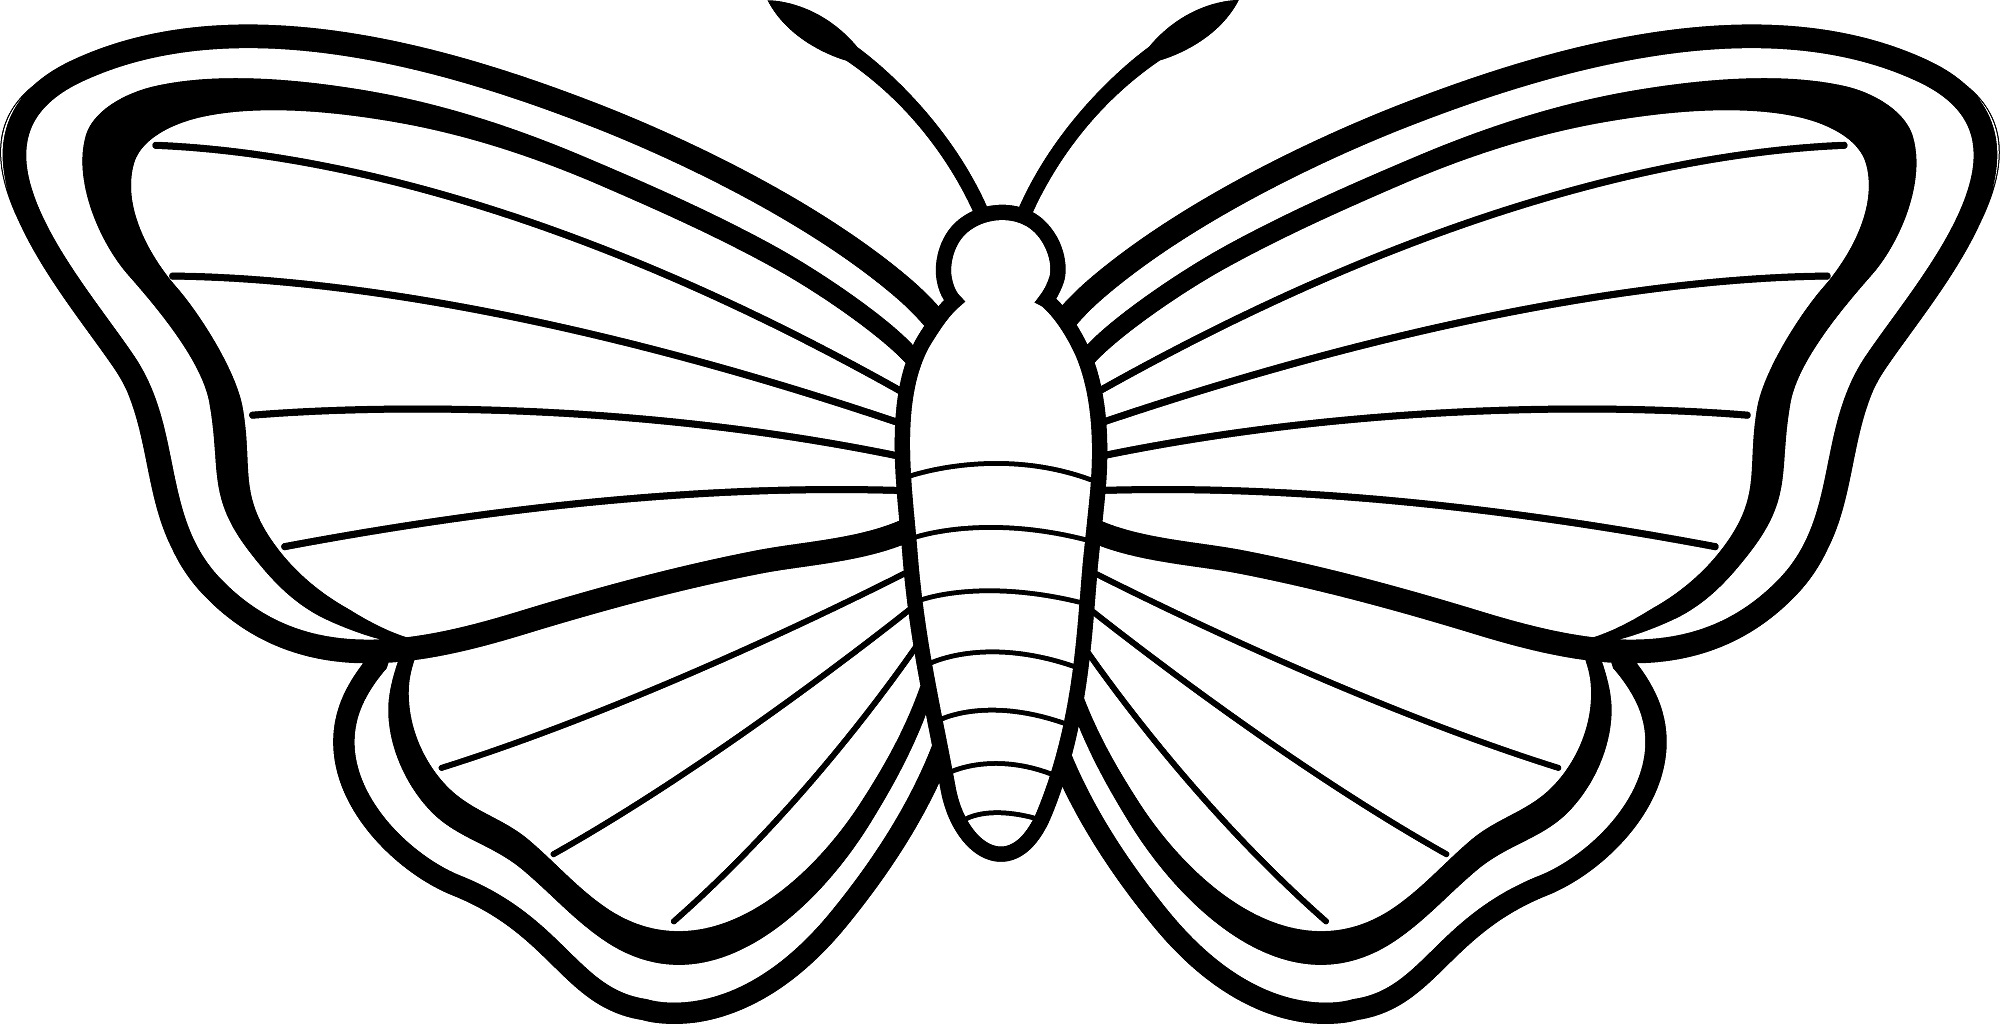 Butterfly clip art easy. Line drawing butterflies at